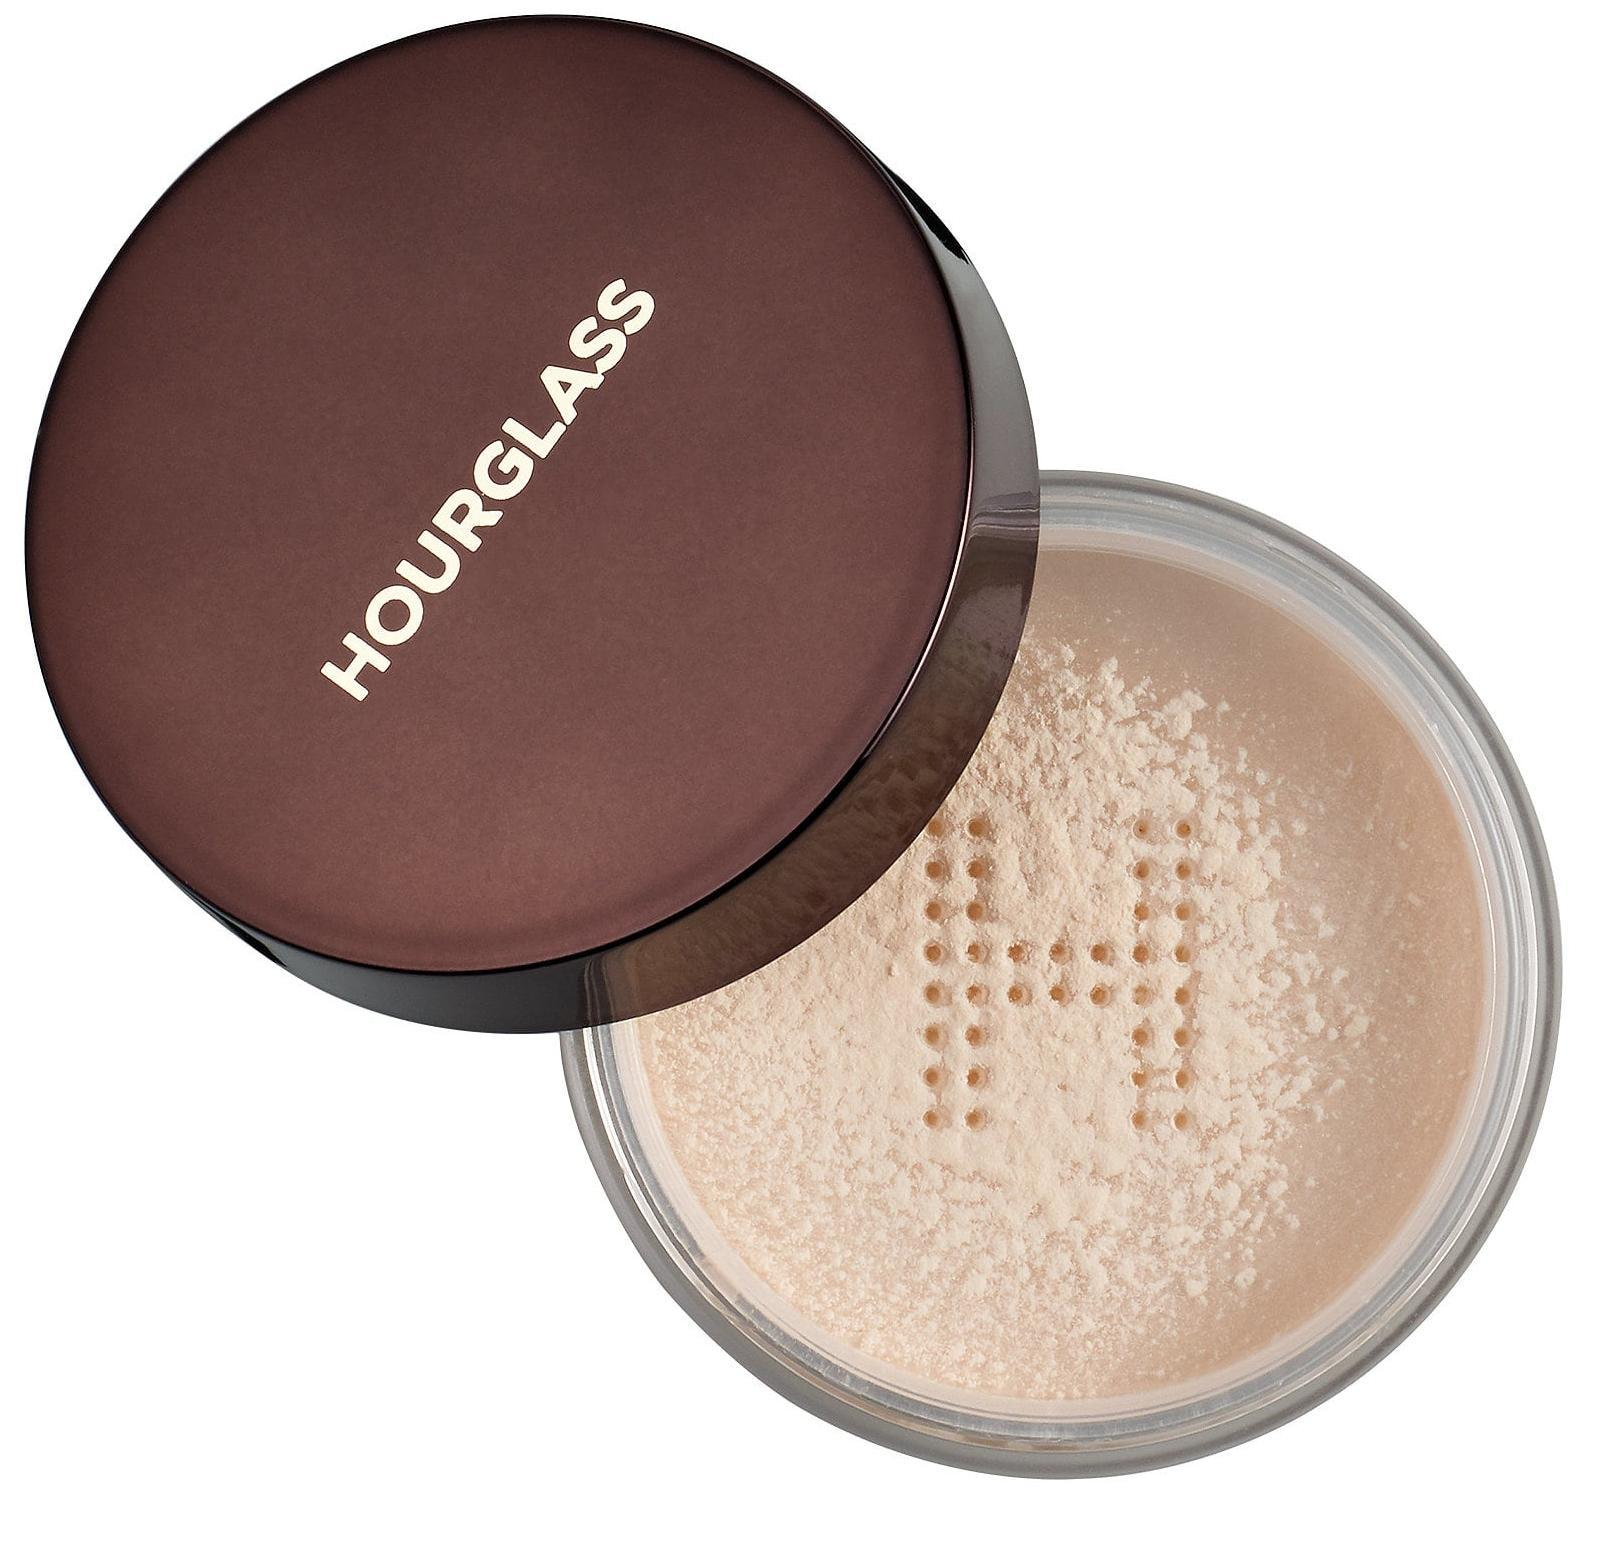 Hourglass Veil Translucent Setting Mini Powder Travel рассыпчатая пудра 2 г